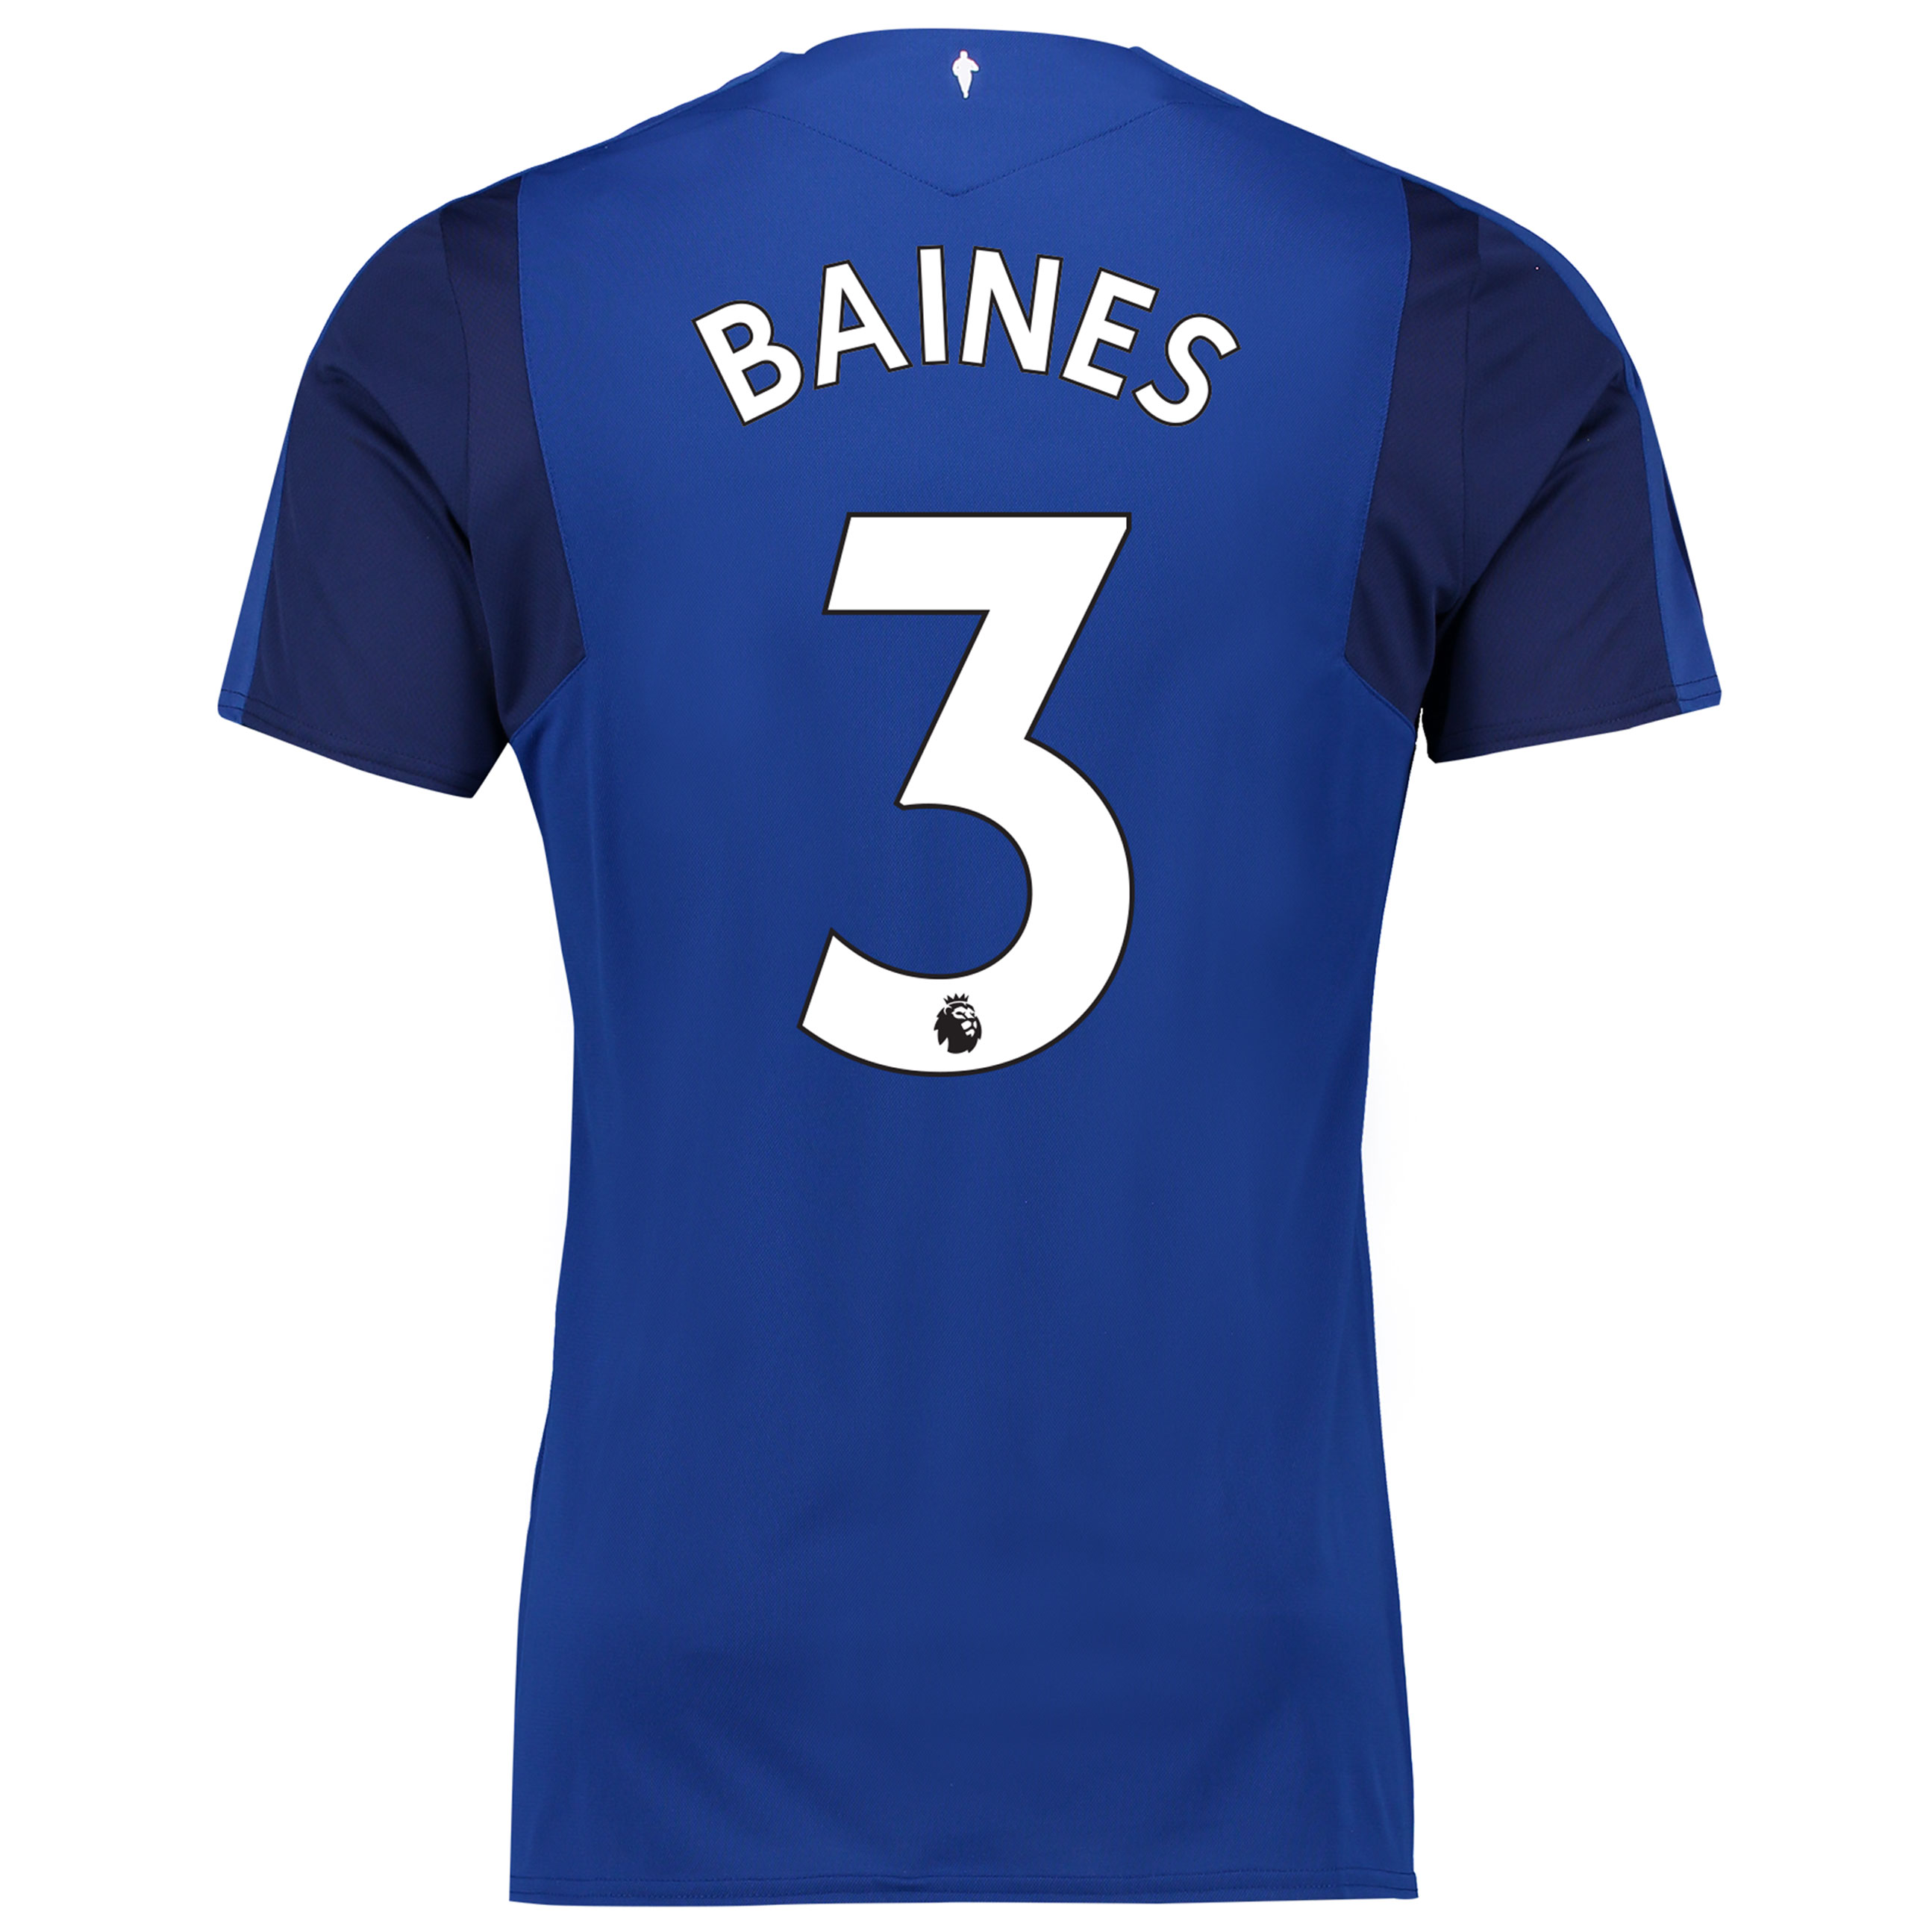 Everton Home Shirt 2017/18 with Baines 3 printing